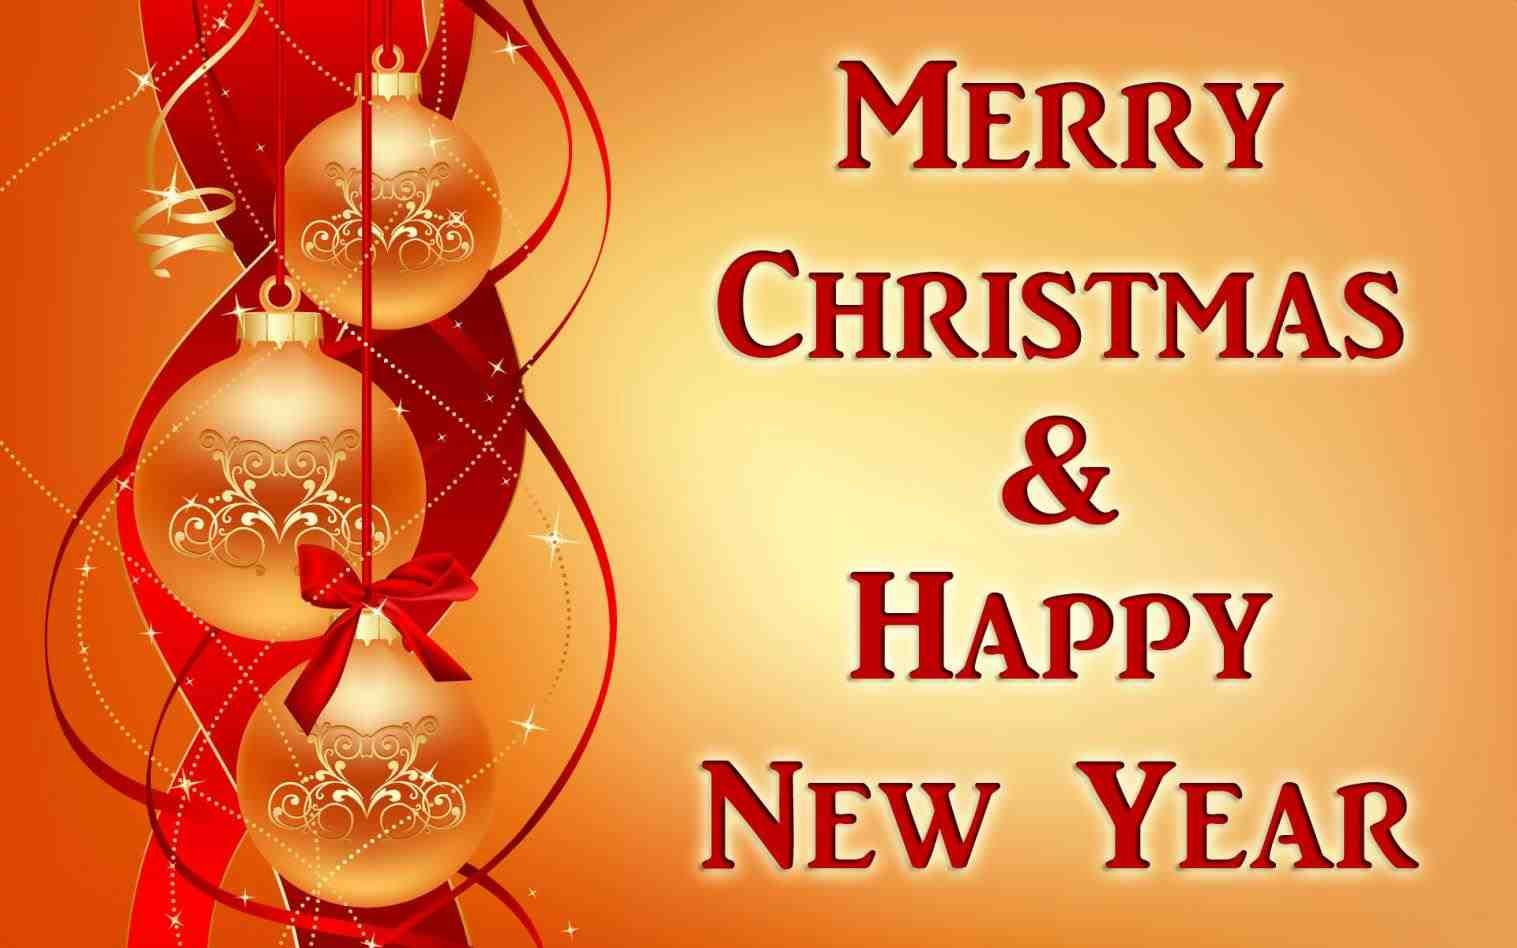 Merry Christmas And Happy New Year Wishes 2019 So Anyone In Search Of Merry Christ Merry Christmas Card Greetings Happy Merry Christmas Merry Christmas Wishes